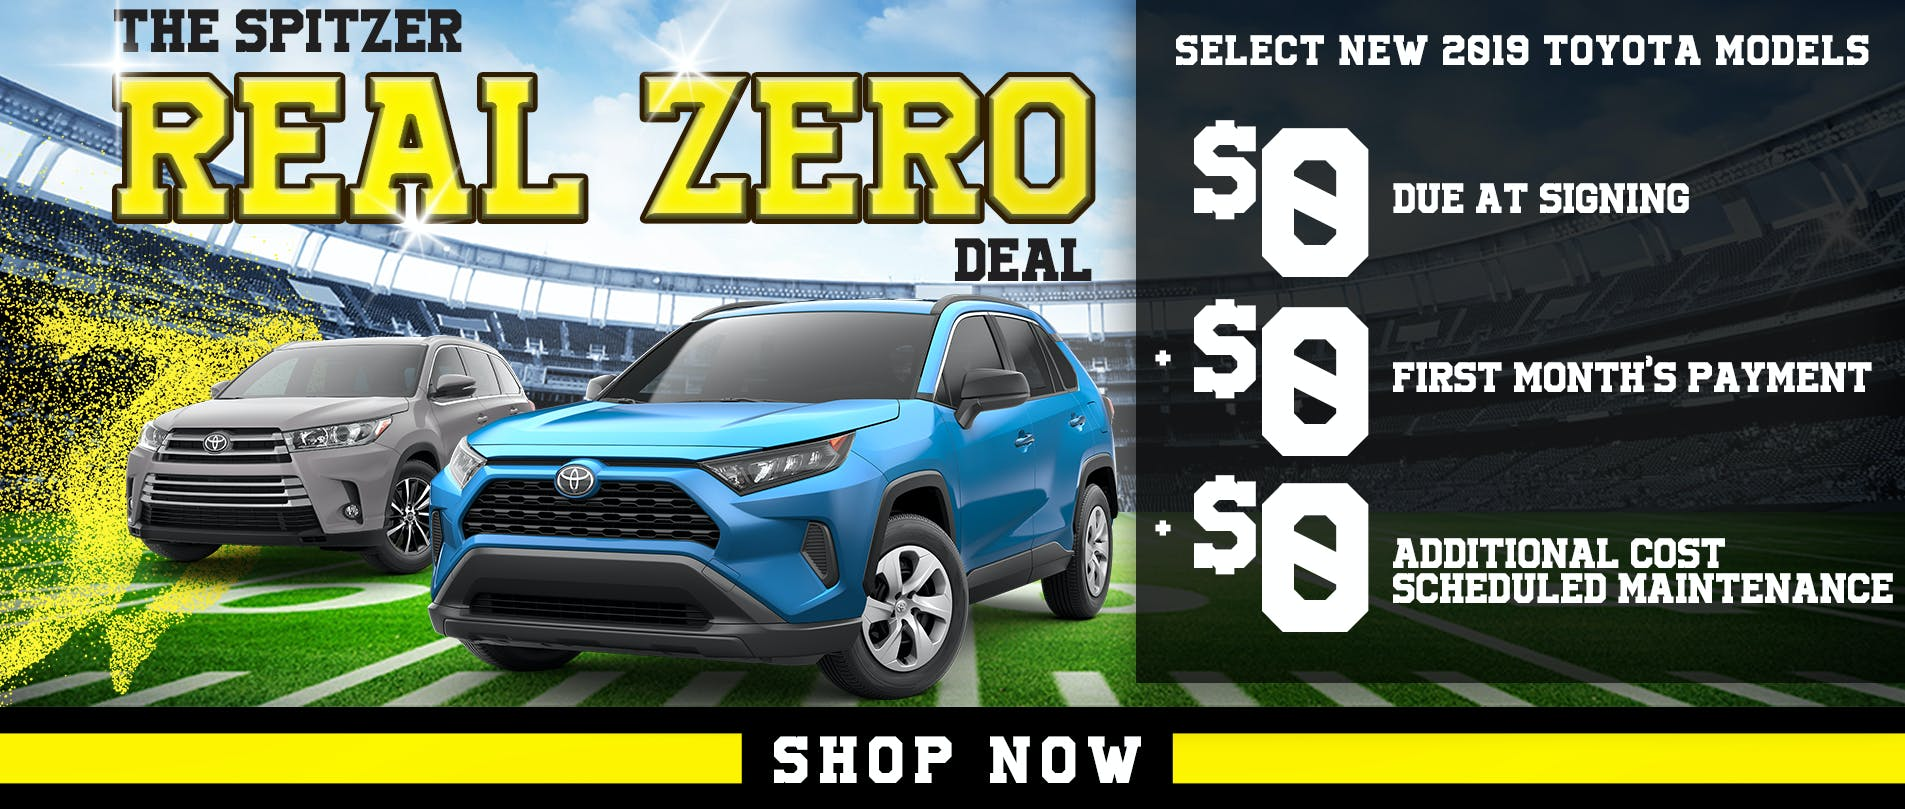 The Spitzer Real Zero Deal | Select New 2019 Toyota Models | $0 Due at Signing, $0 First Month's Payment, $0 Additional Cost Scheduled Maintenance